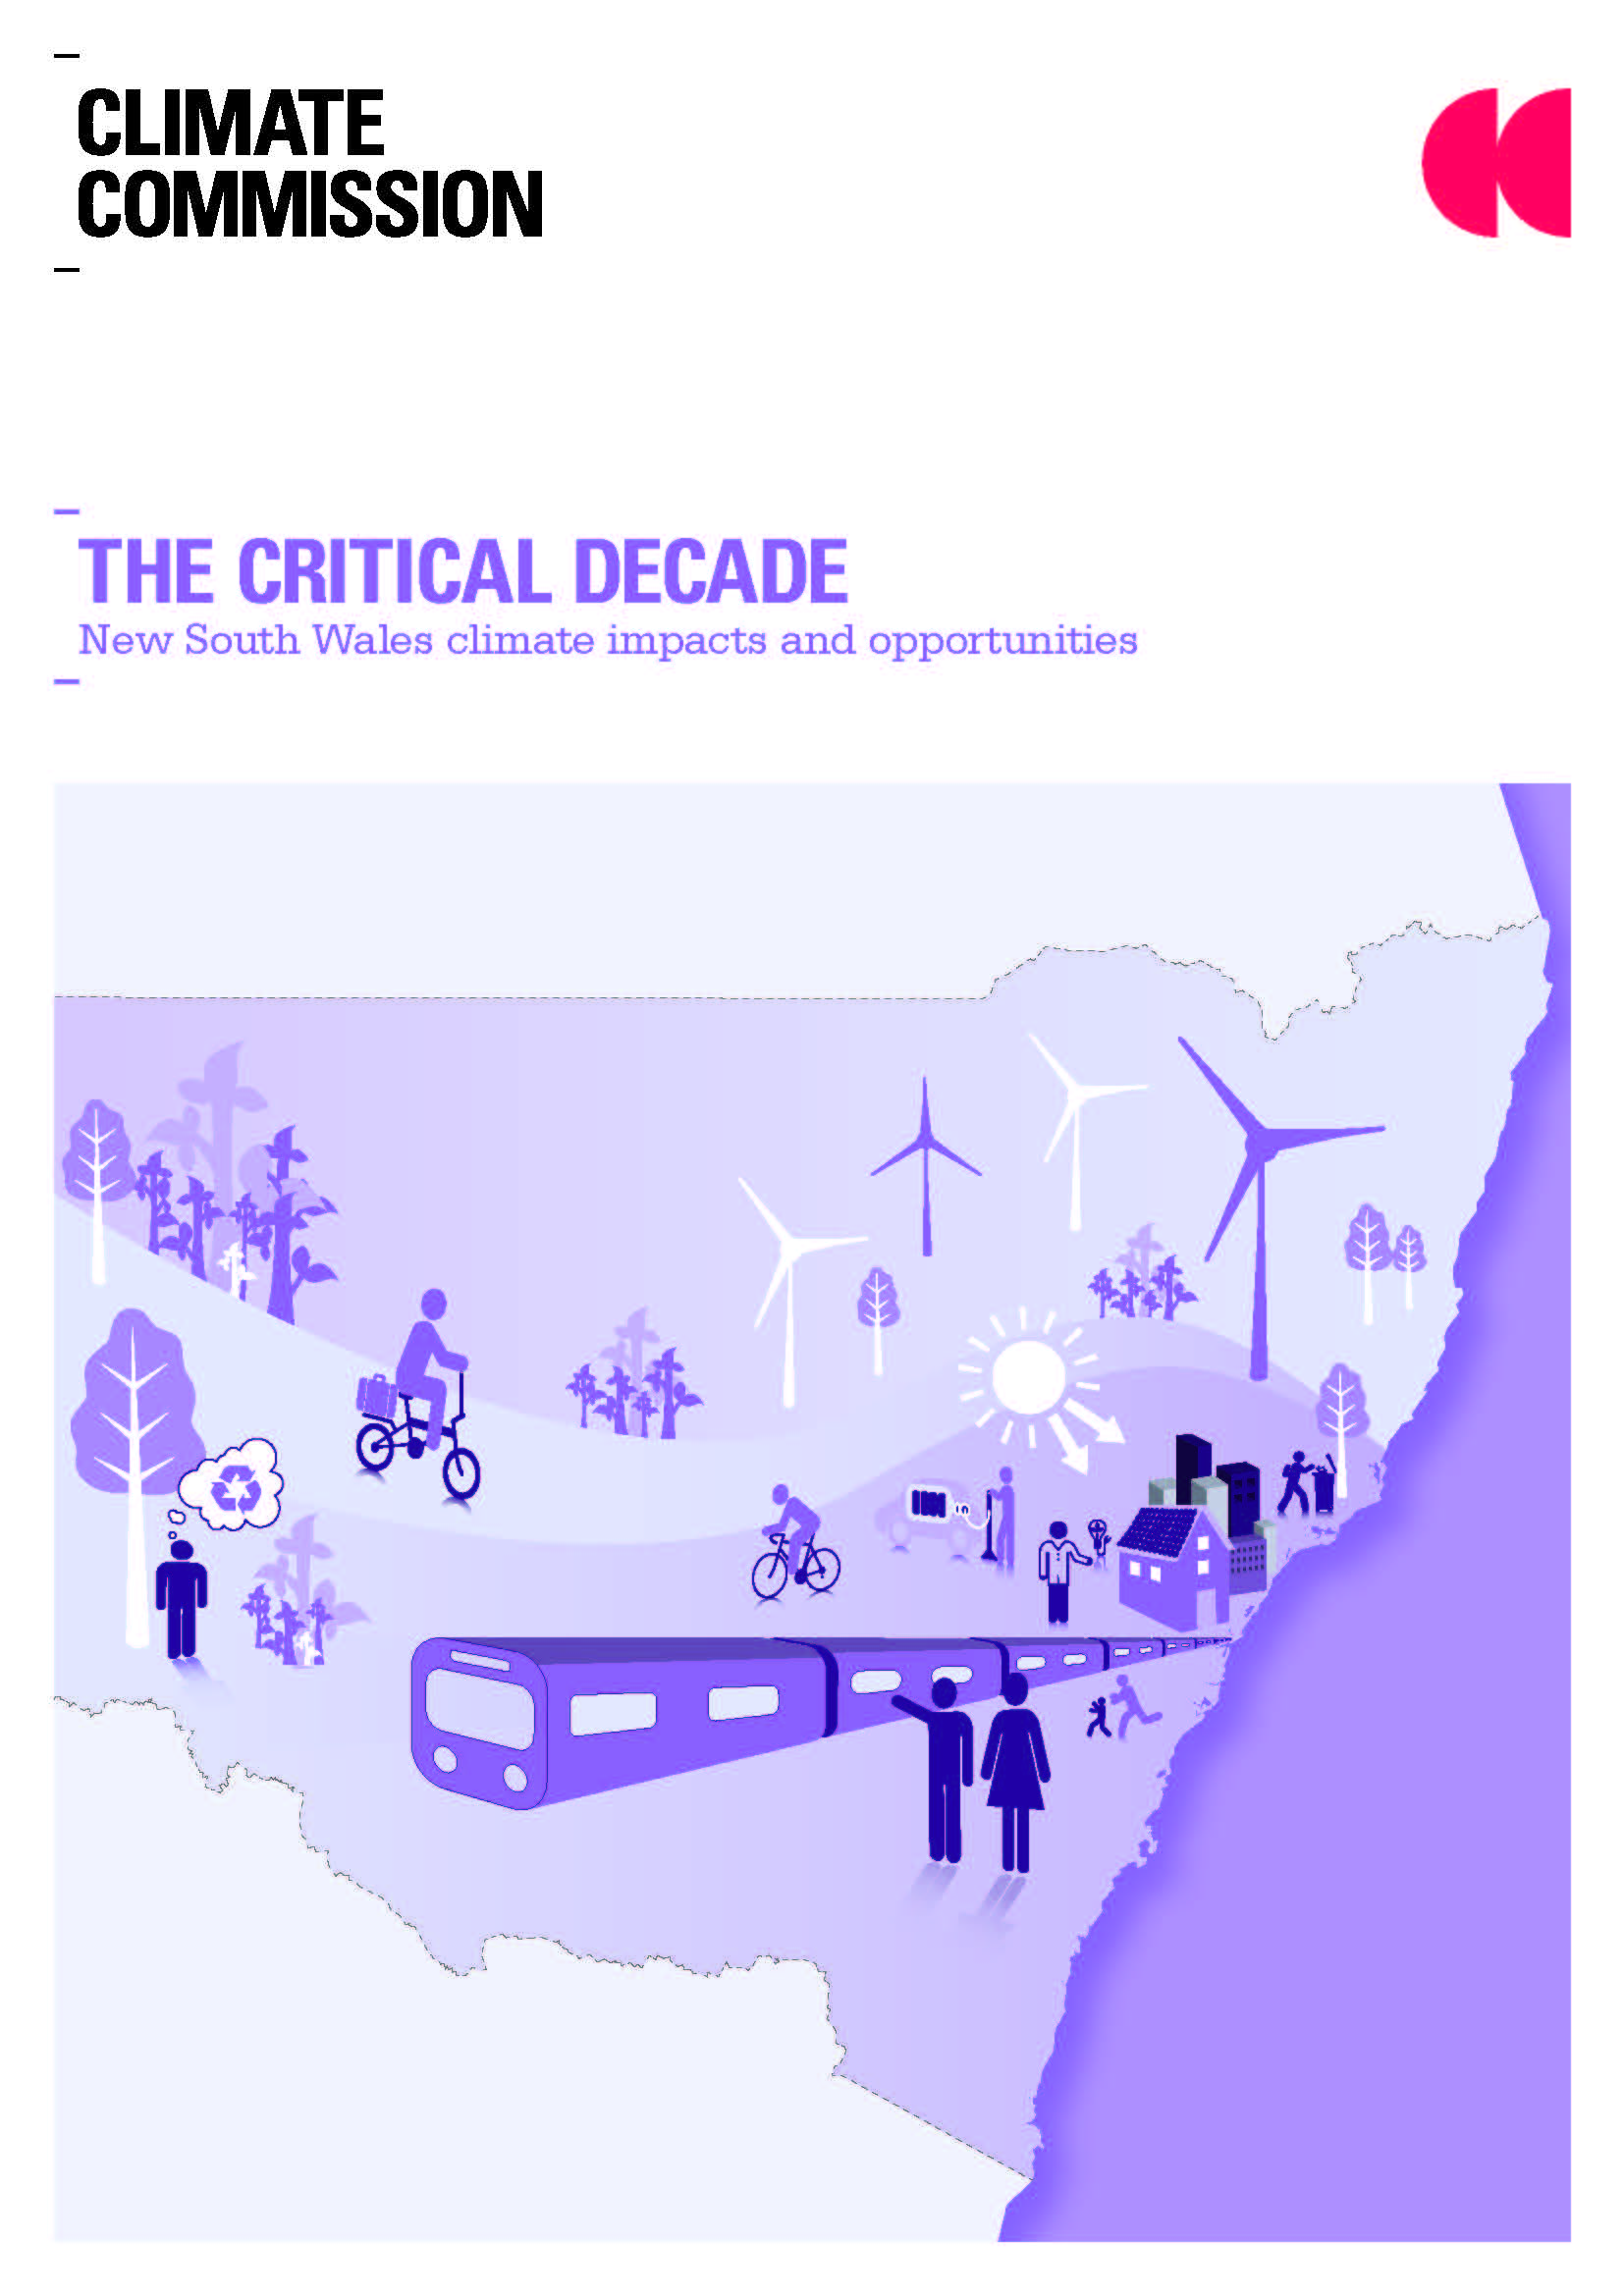 Climate Impacts And Opportunities For New South Wales